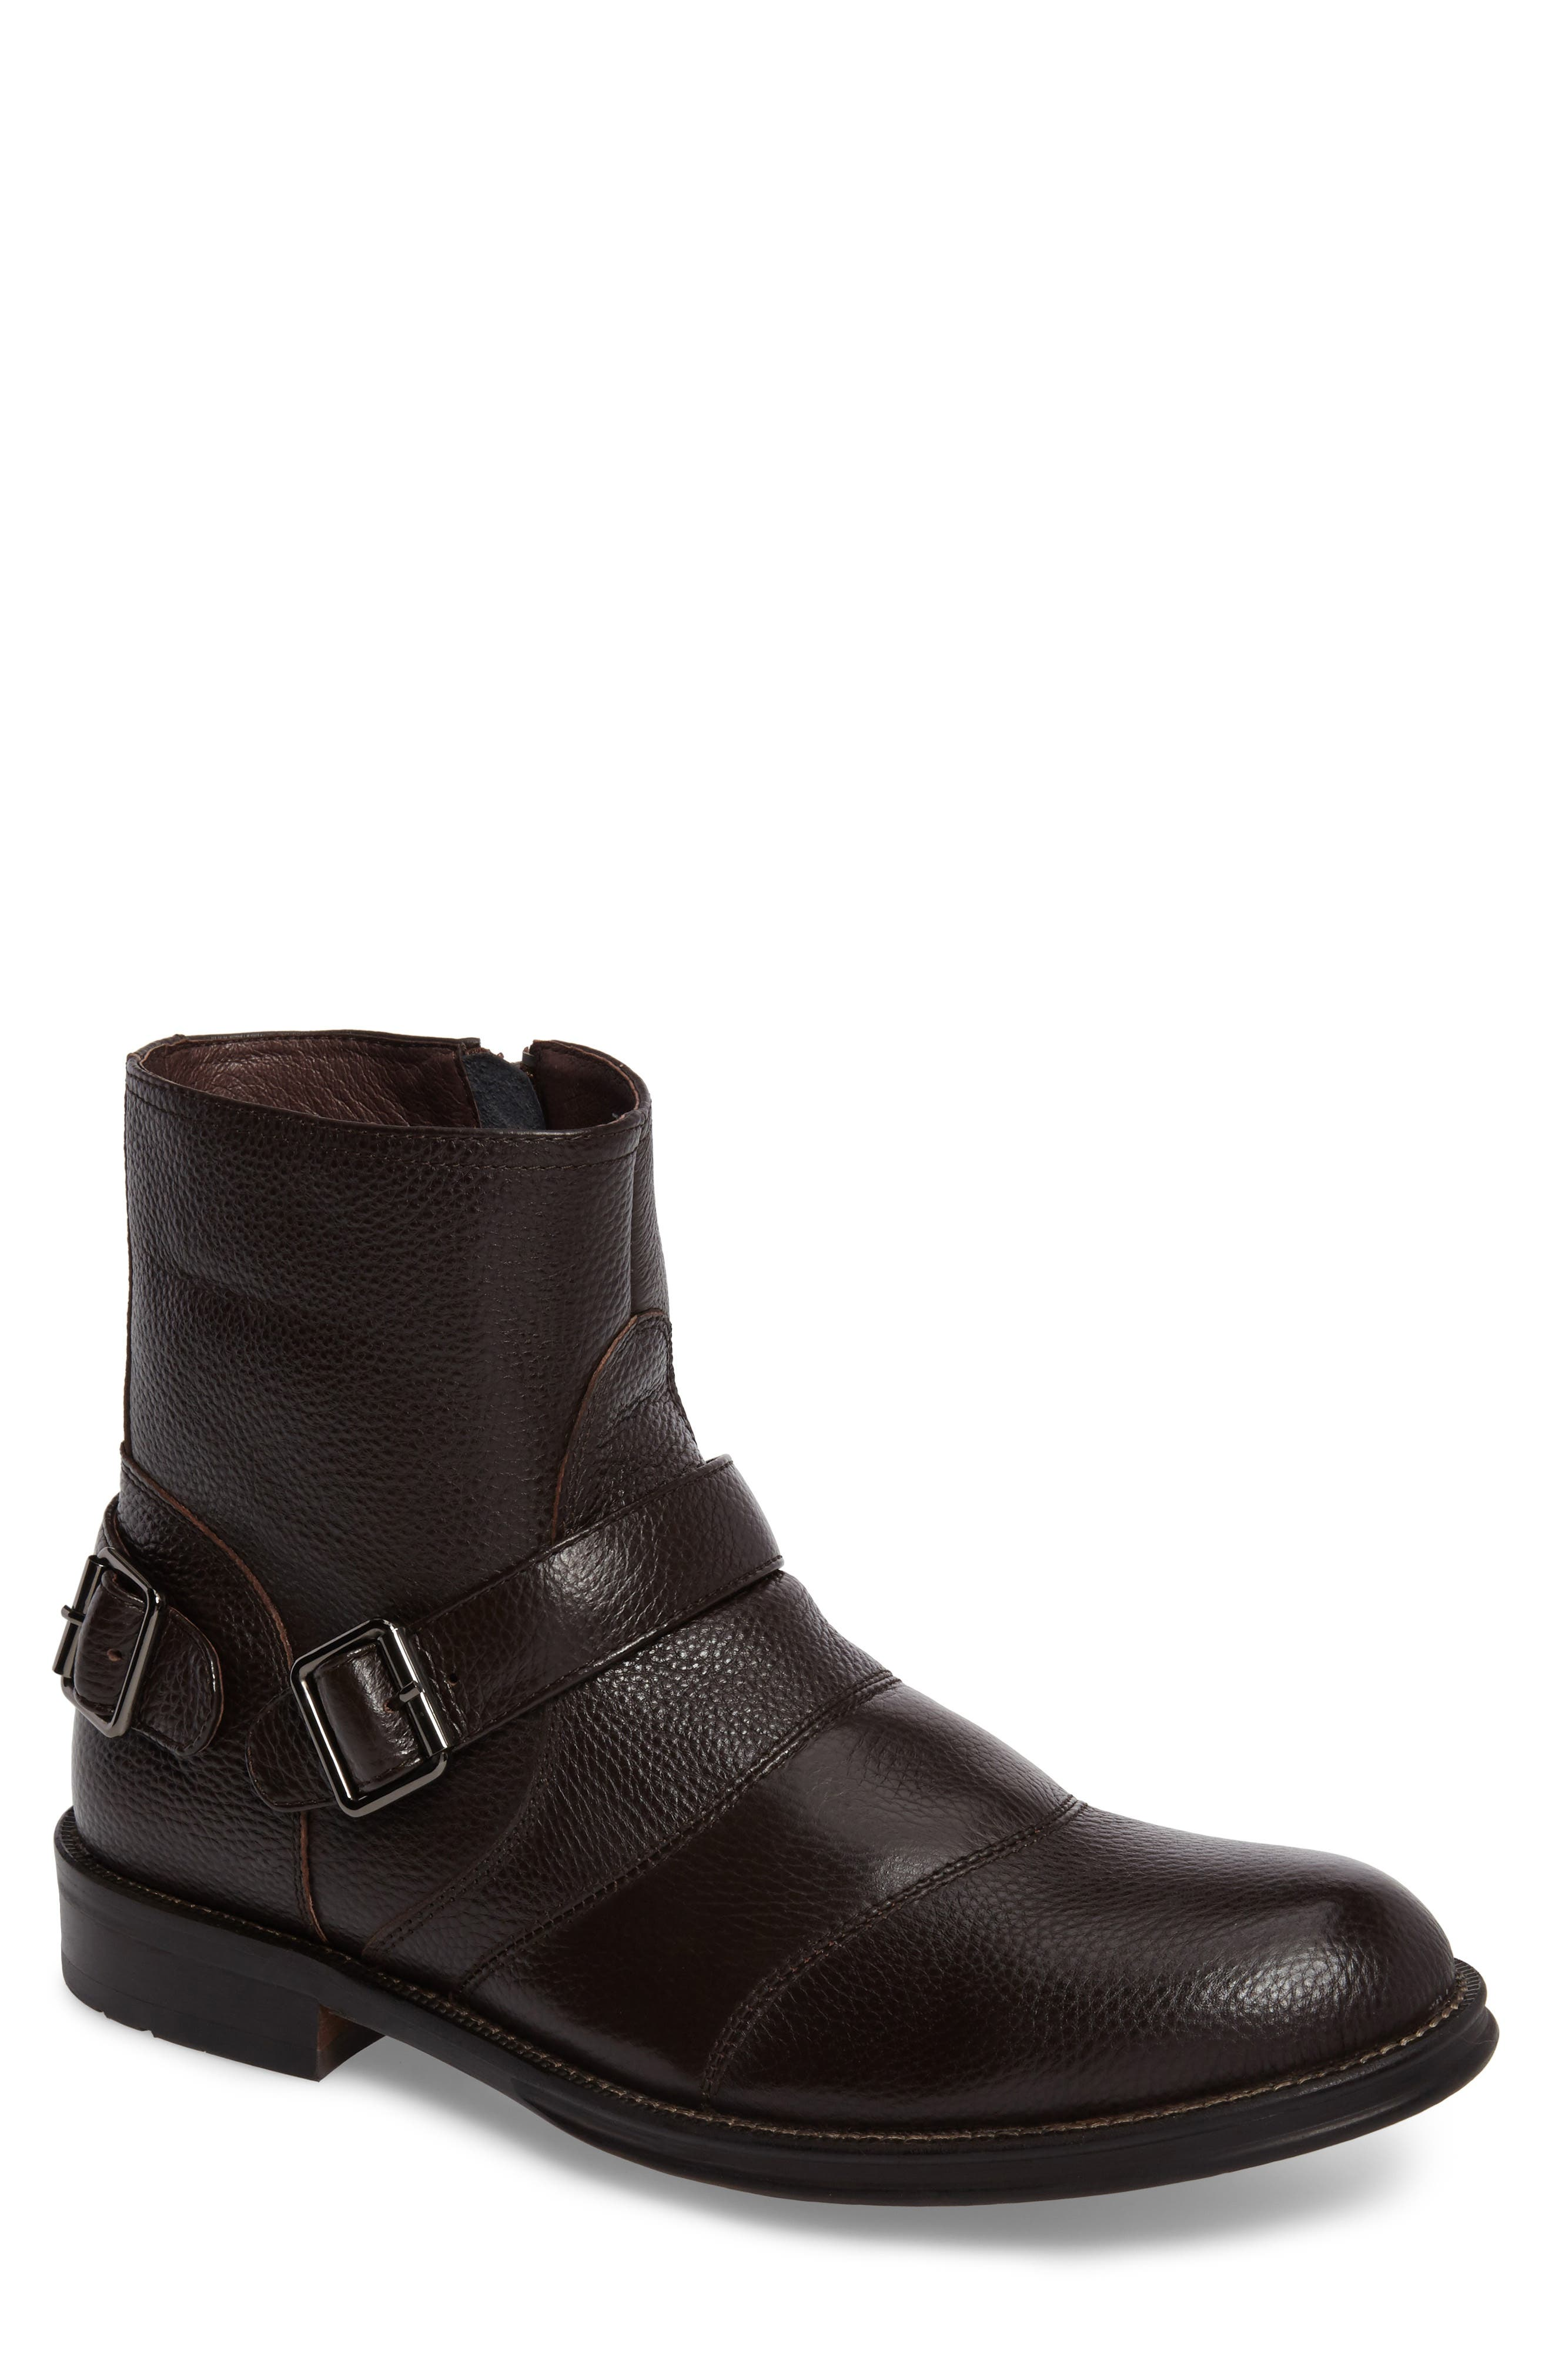 Howson Buckle Strap Boot,                             Main thumbnail 1, color,                             BROWN LEATHER